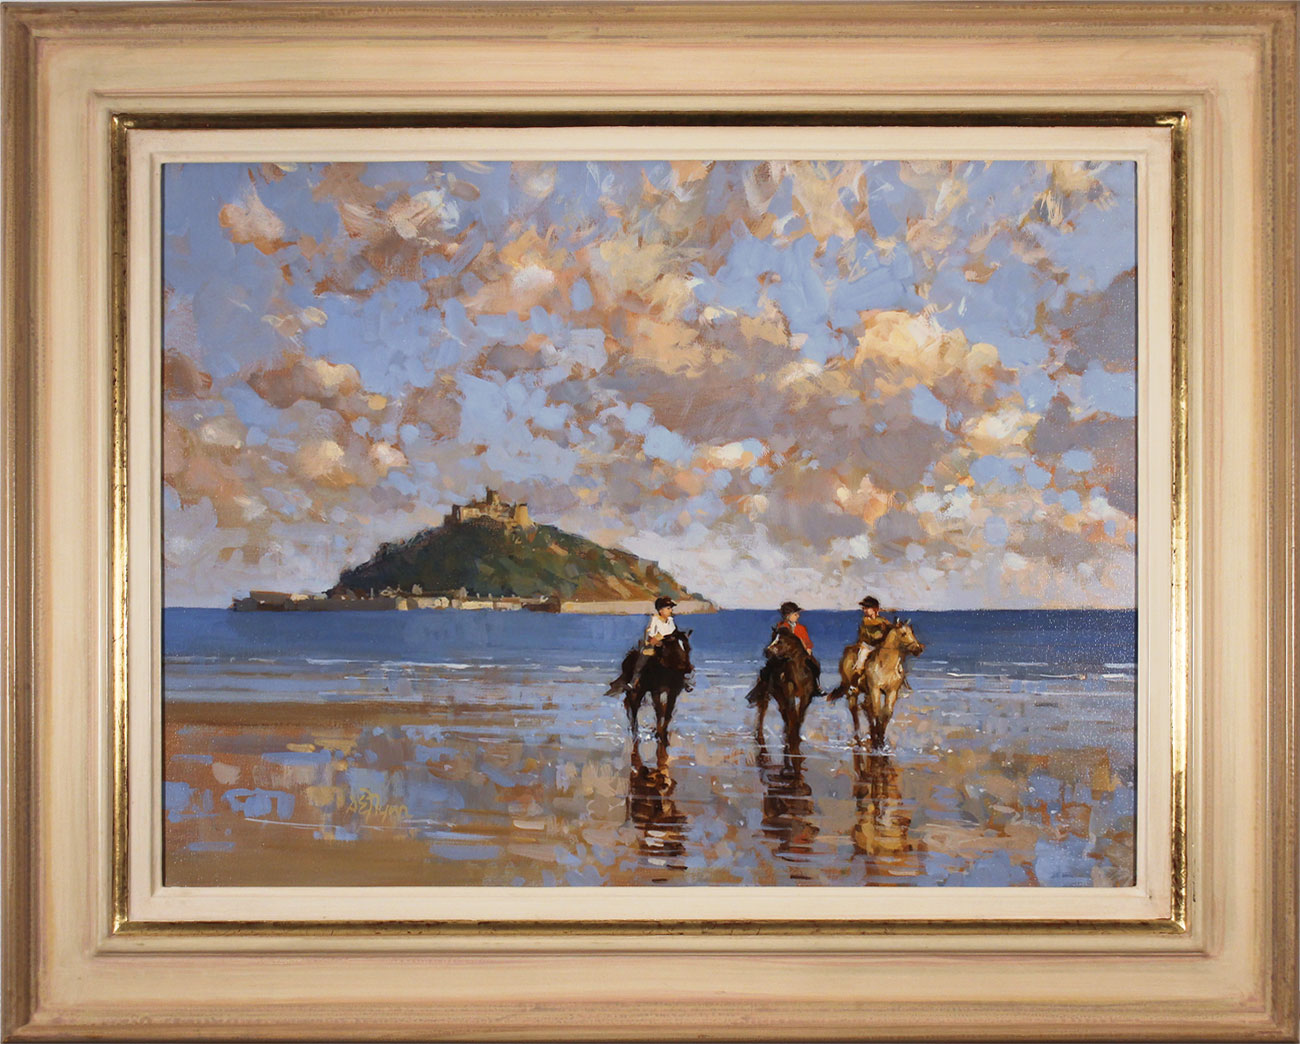 Dianne Flynn, Original acrylic painting on canvas, Mount's Bay Evening Click to enlarge